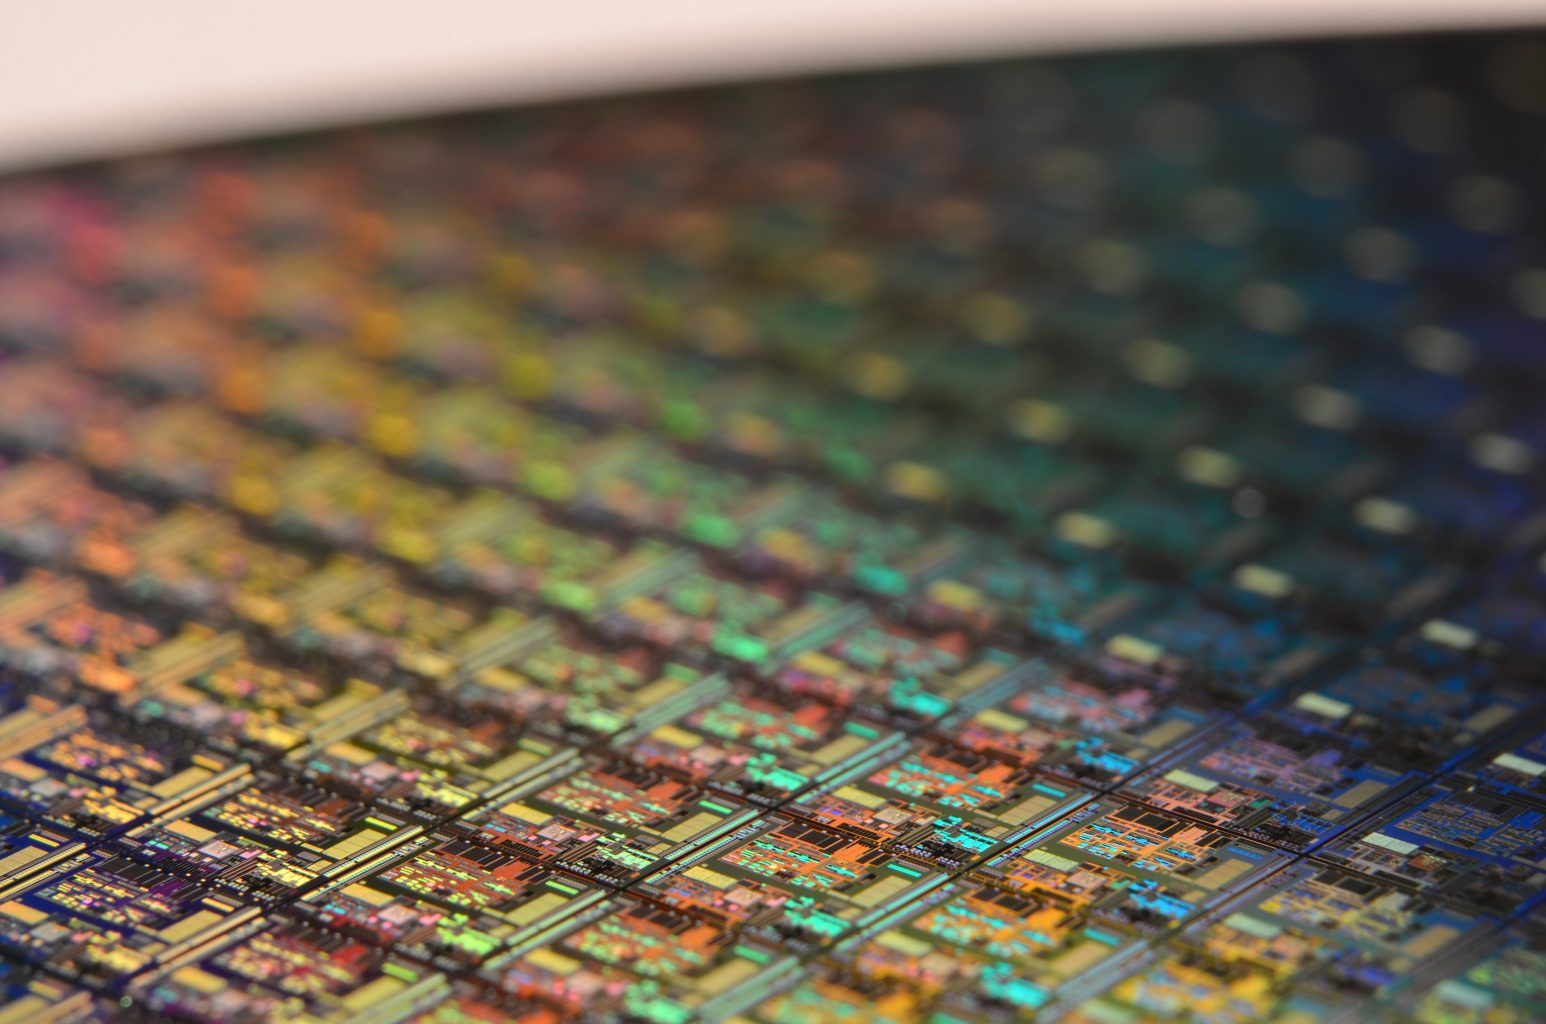 Silicon reclaim wafer market logs second year of strong growth